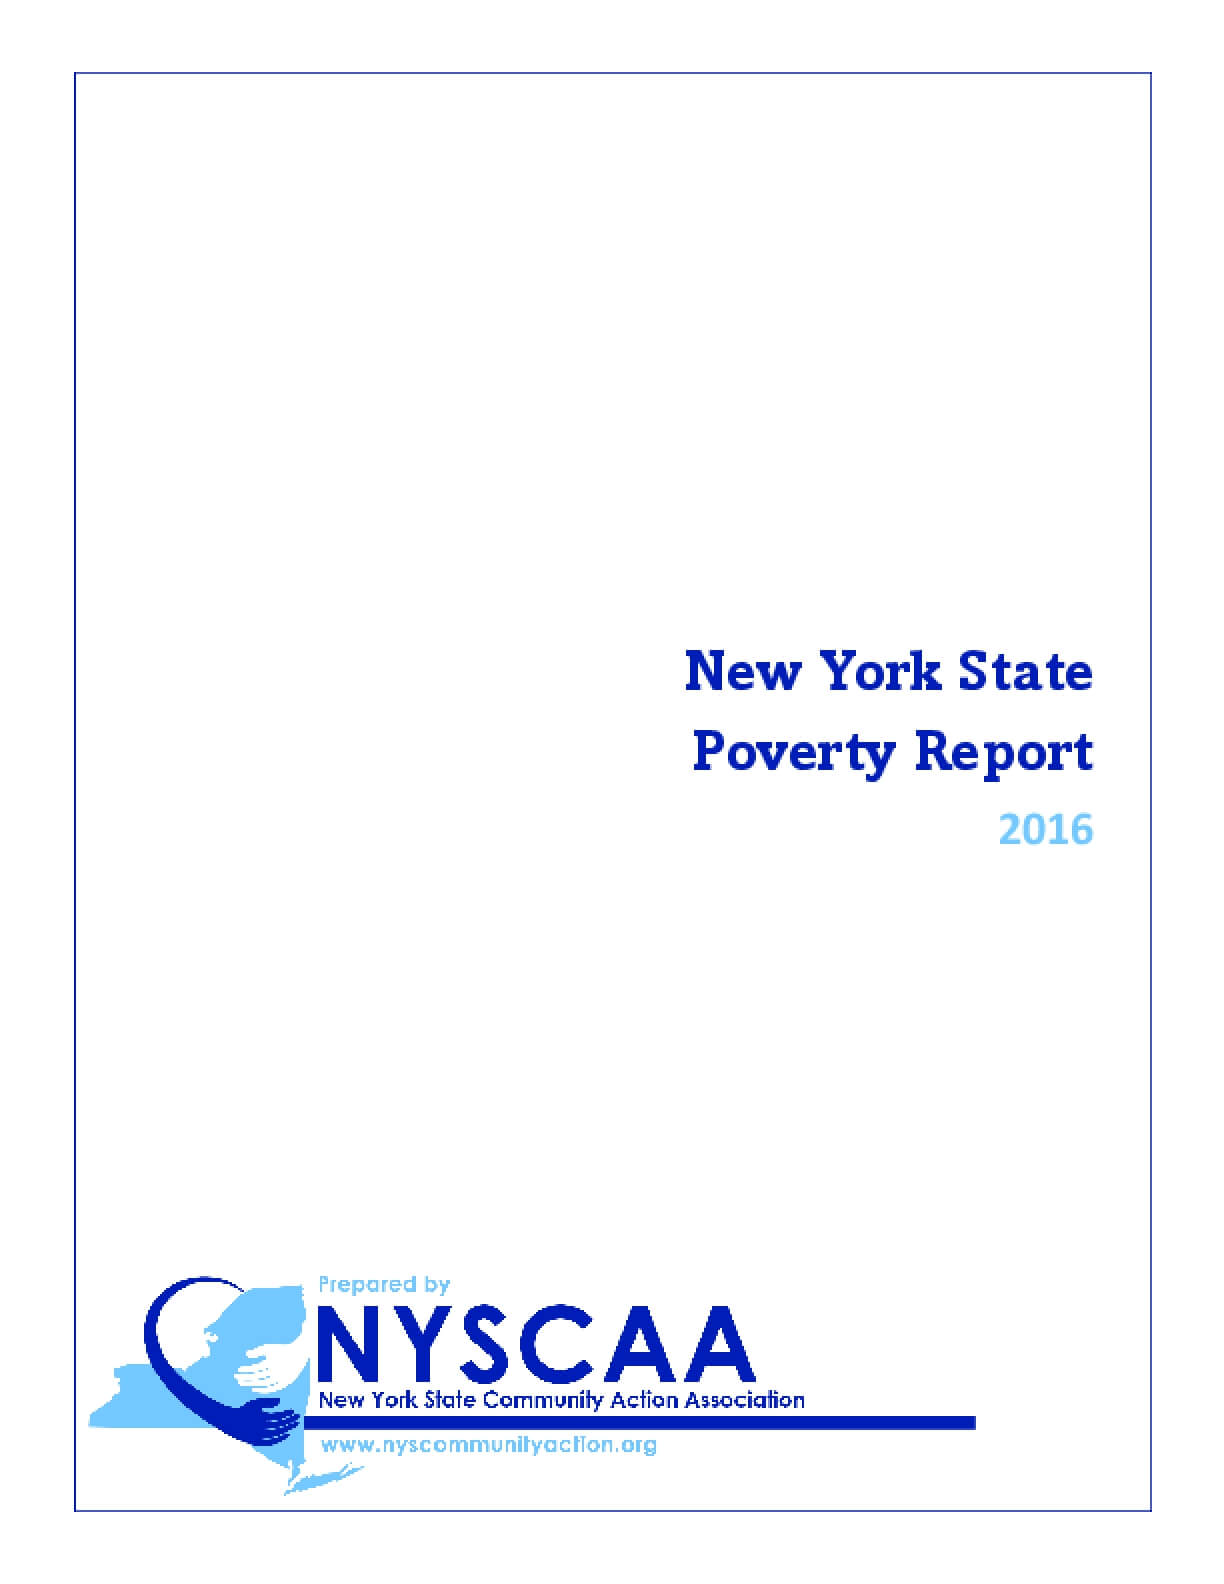 New York State Poverty Report 2016